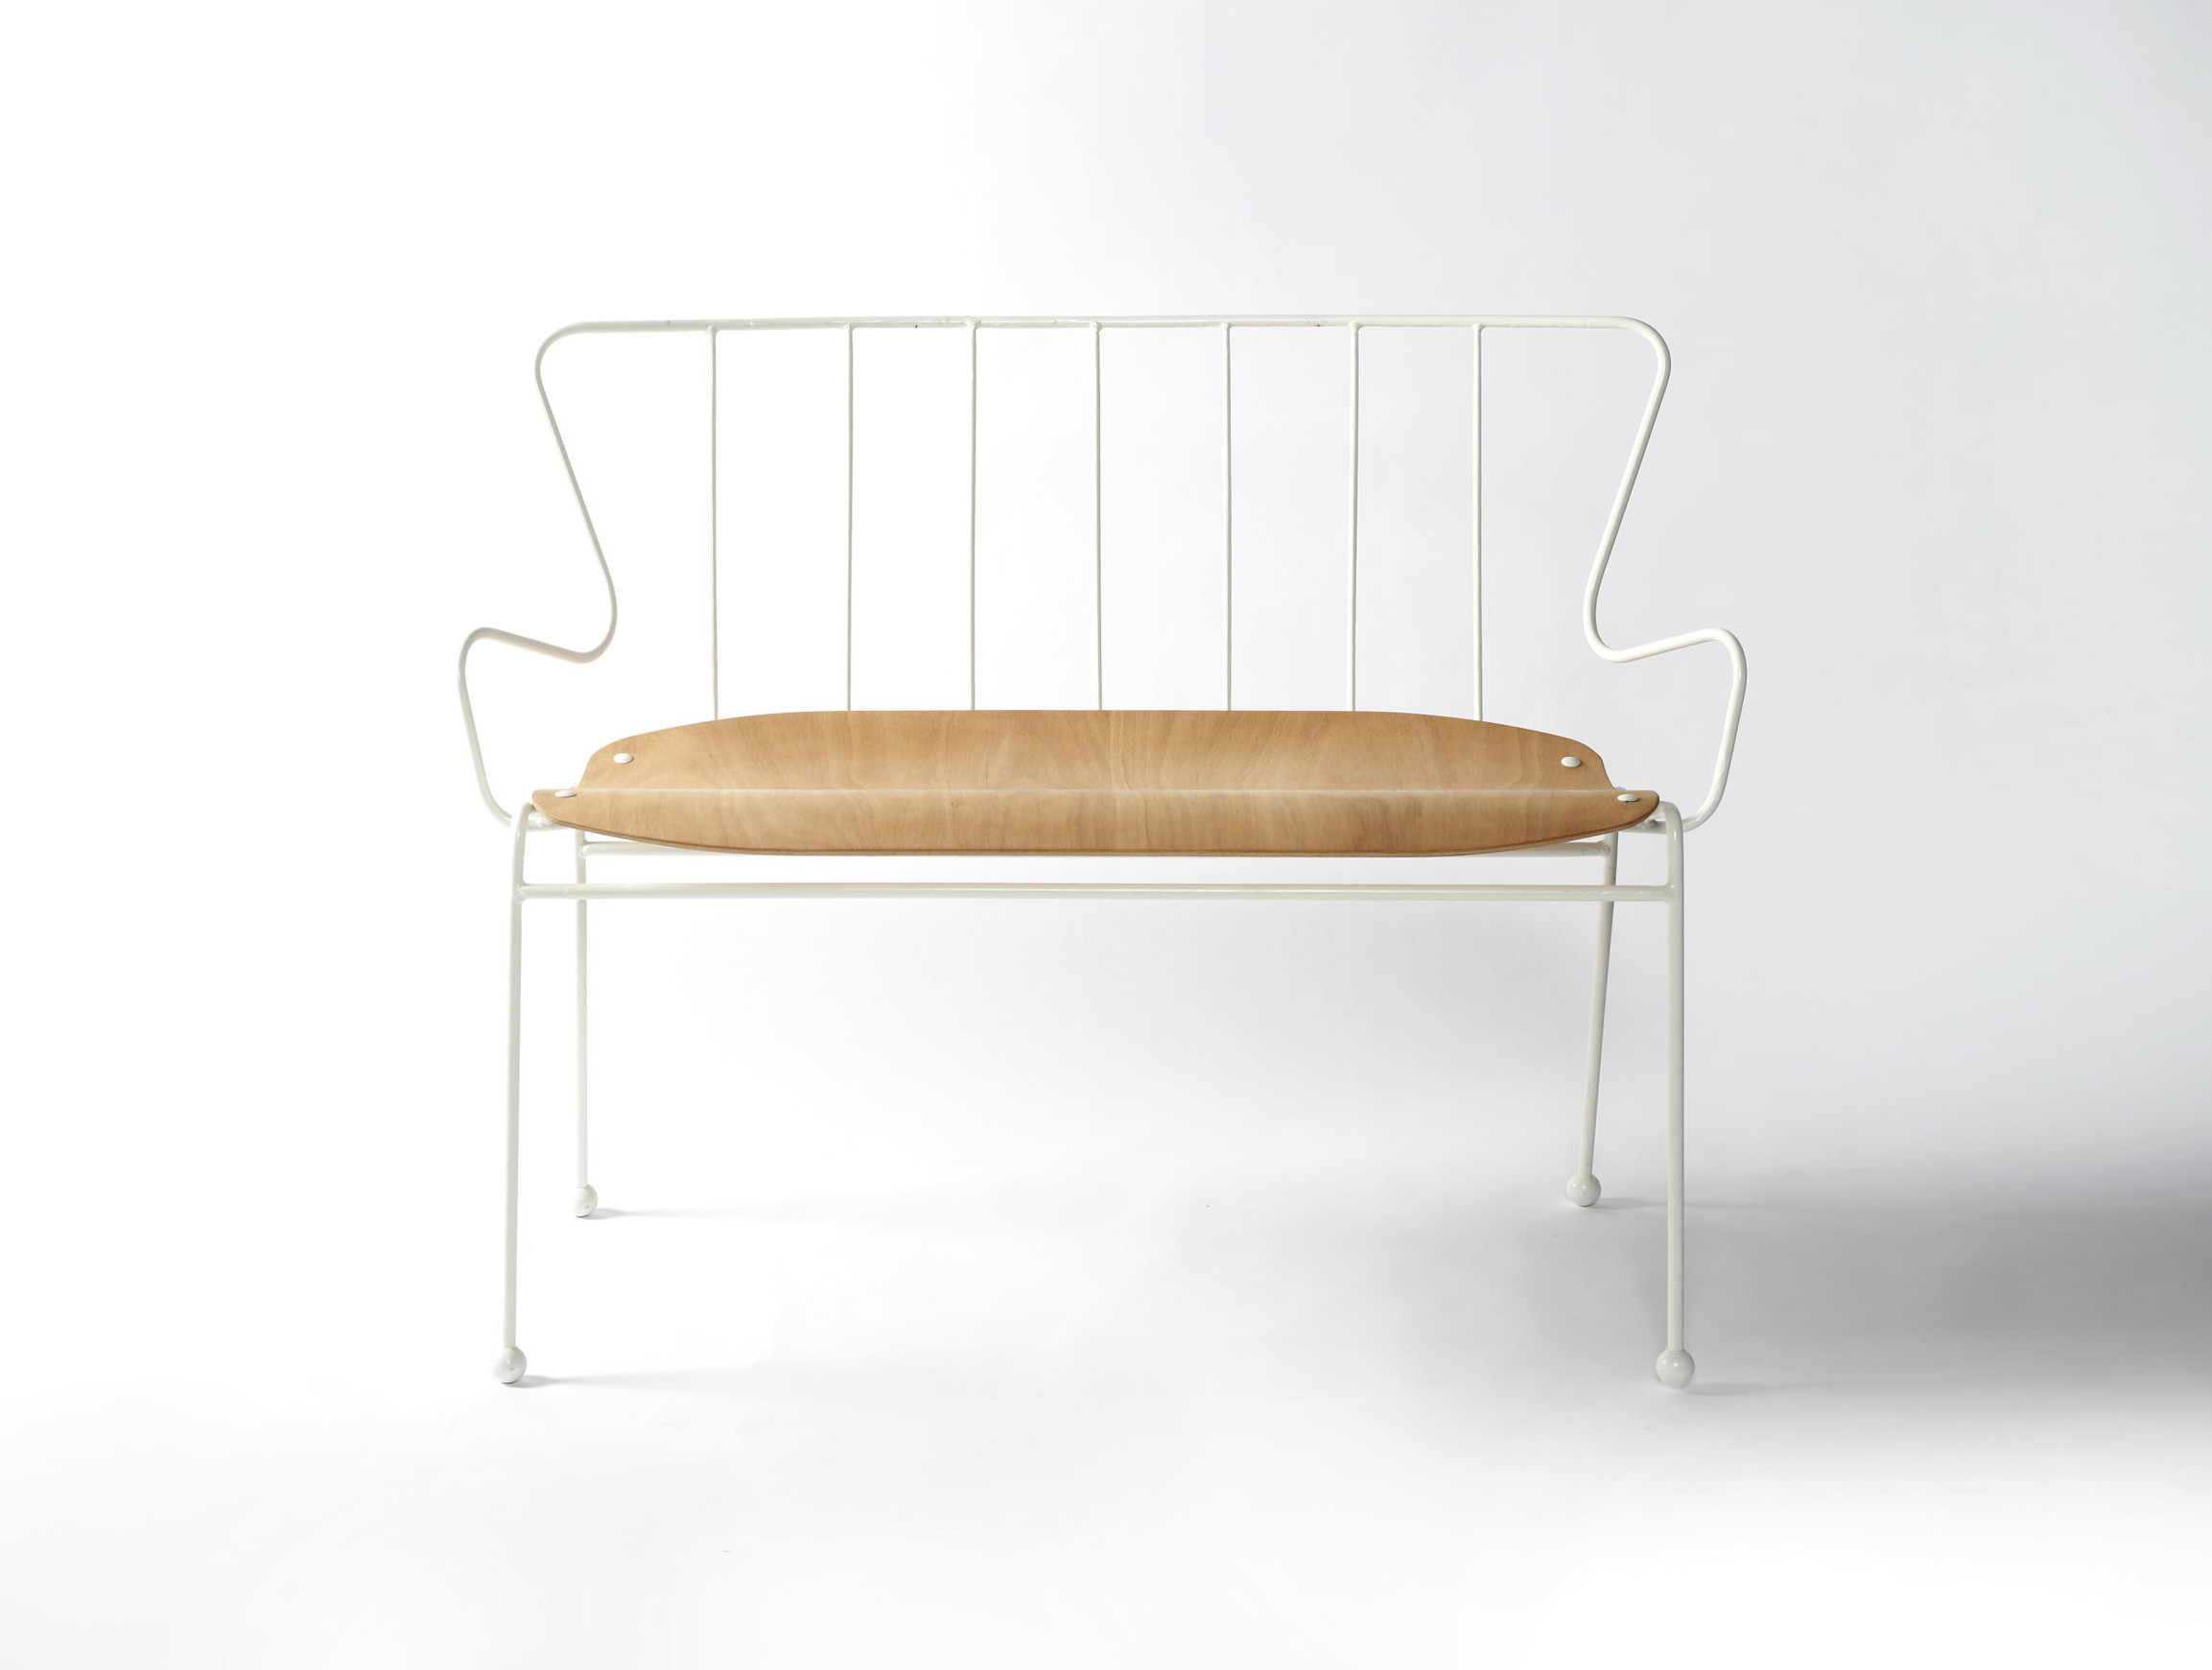 Antelope Bench by Race Furniture